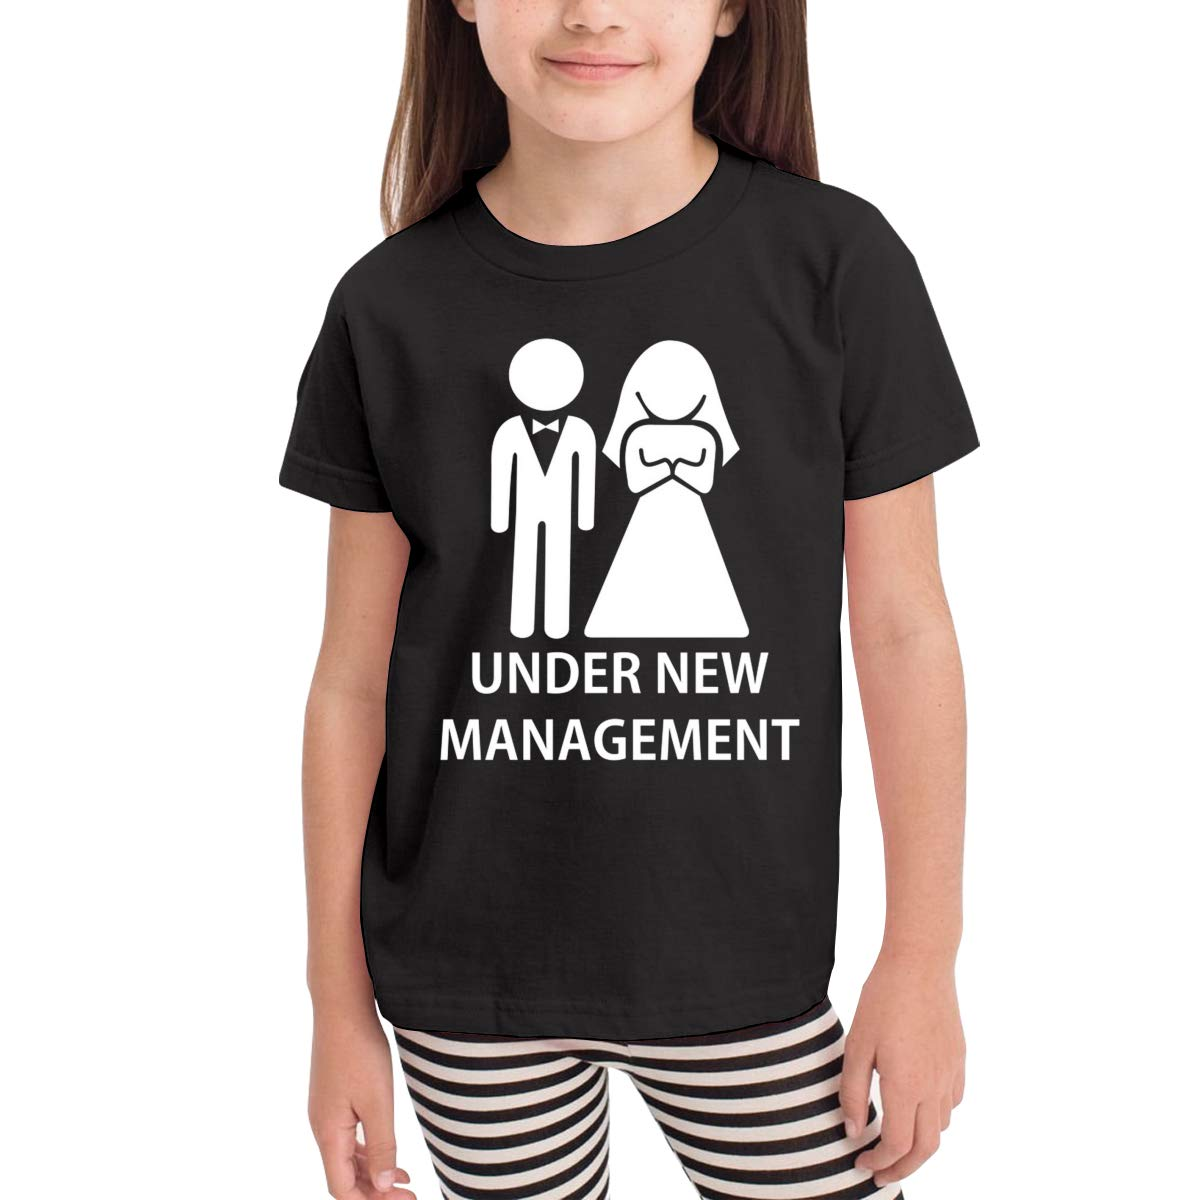 Under New Management Novelty Cotton T Shirt Personality Black Tee for Toddler Kids Boys Girls